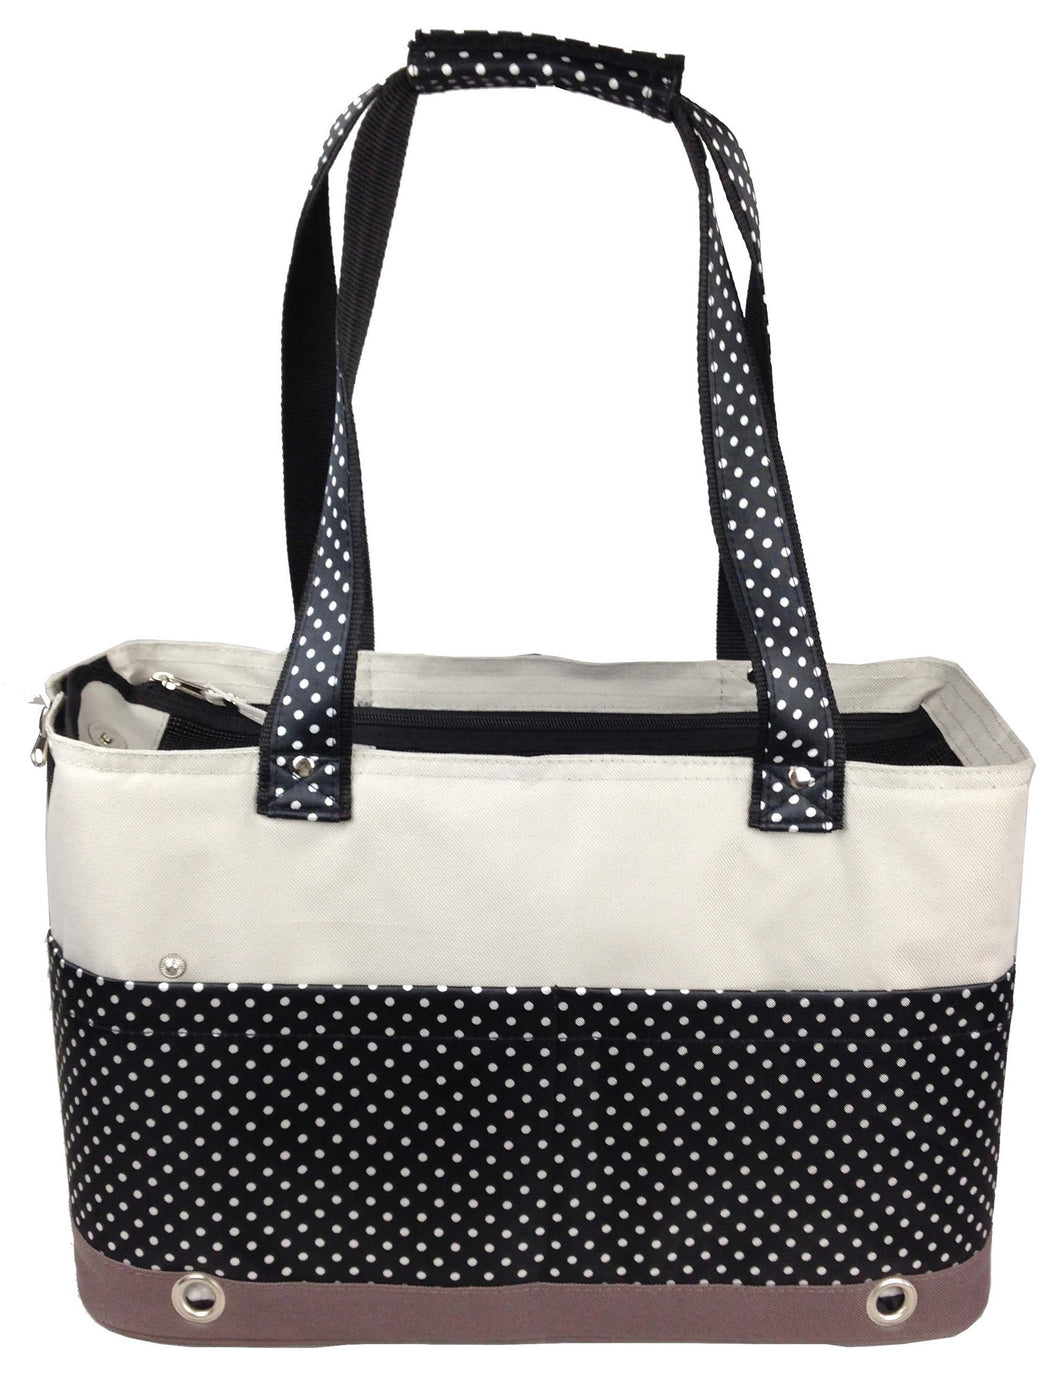 Fashion Tote Spotted Pet Carrier- As Displayed